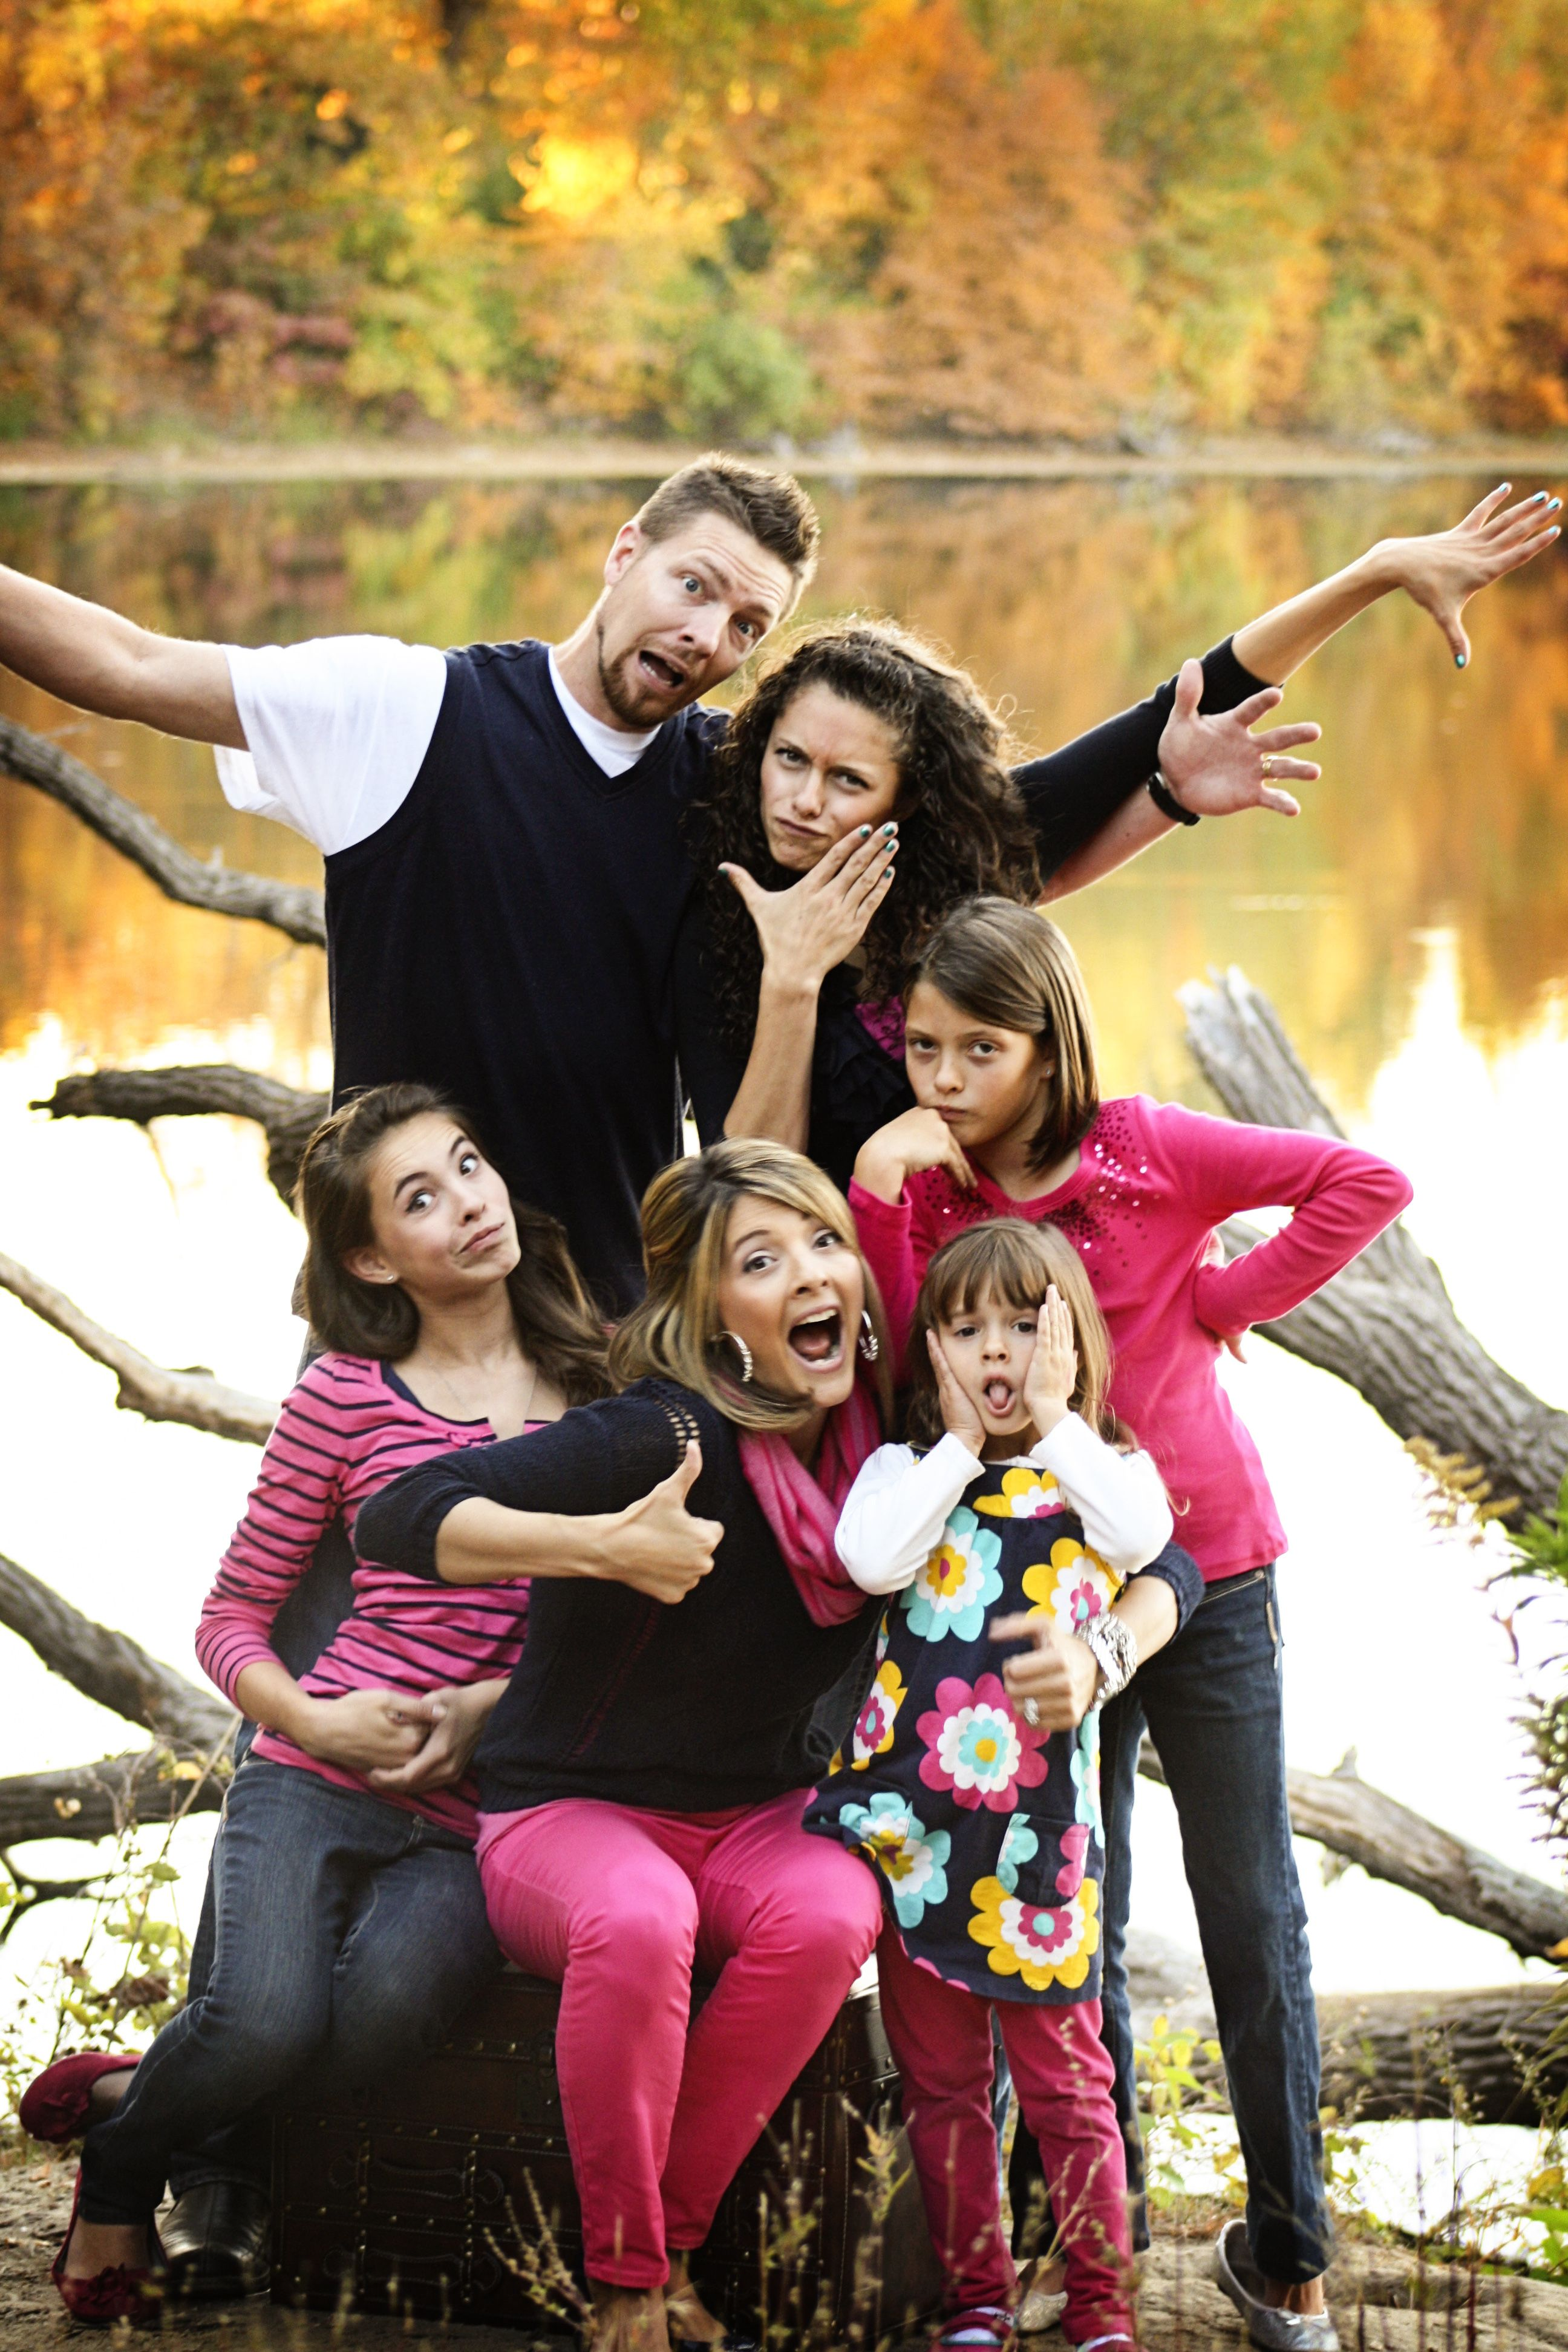 Wacky family photos. Cuz this is more what we're like